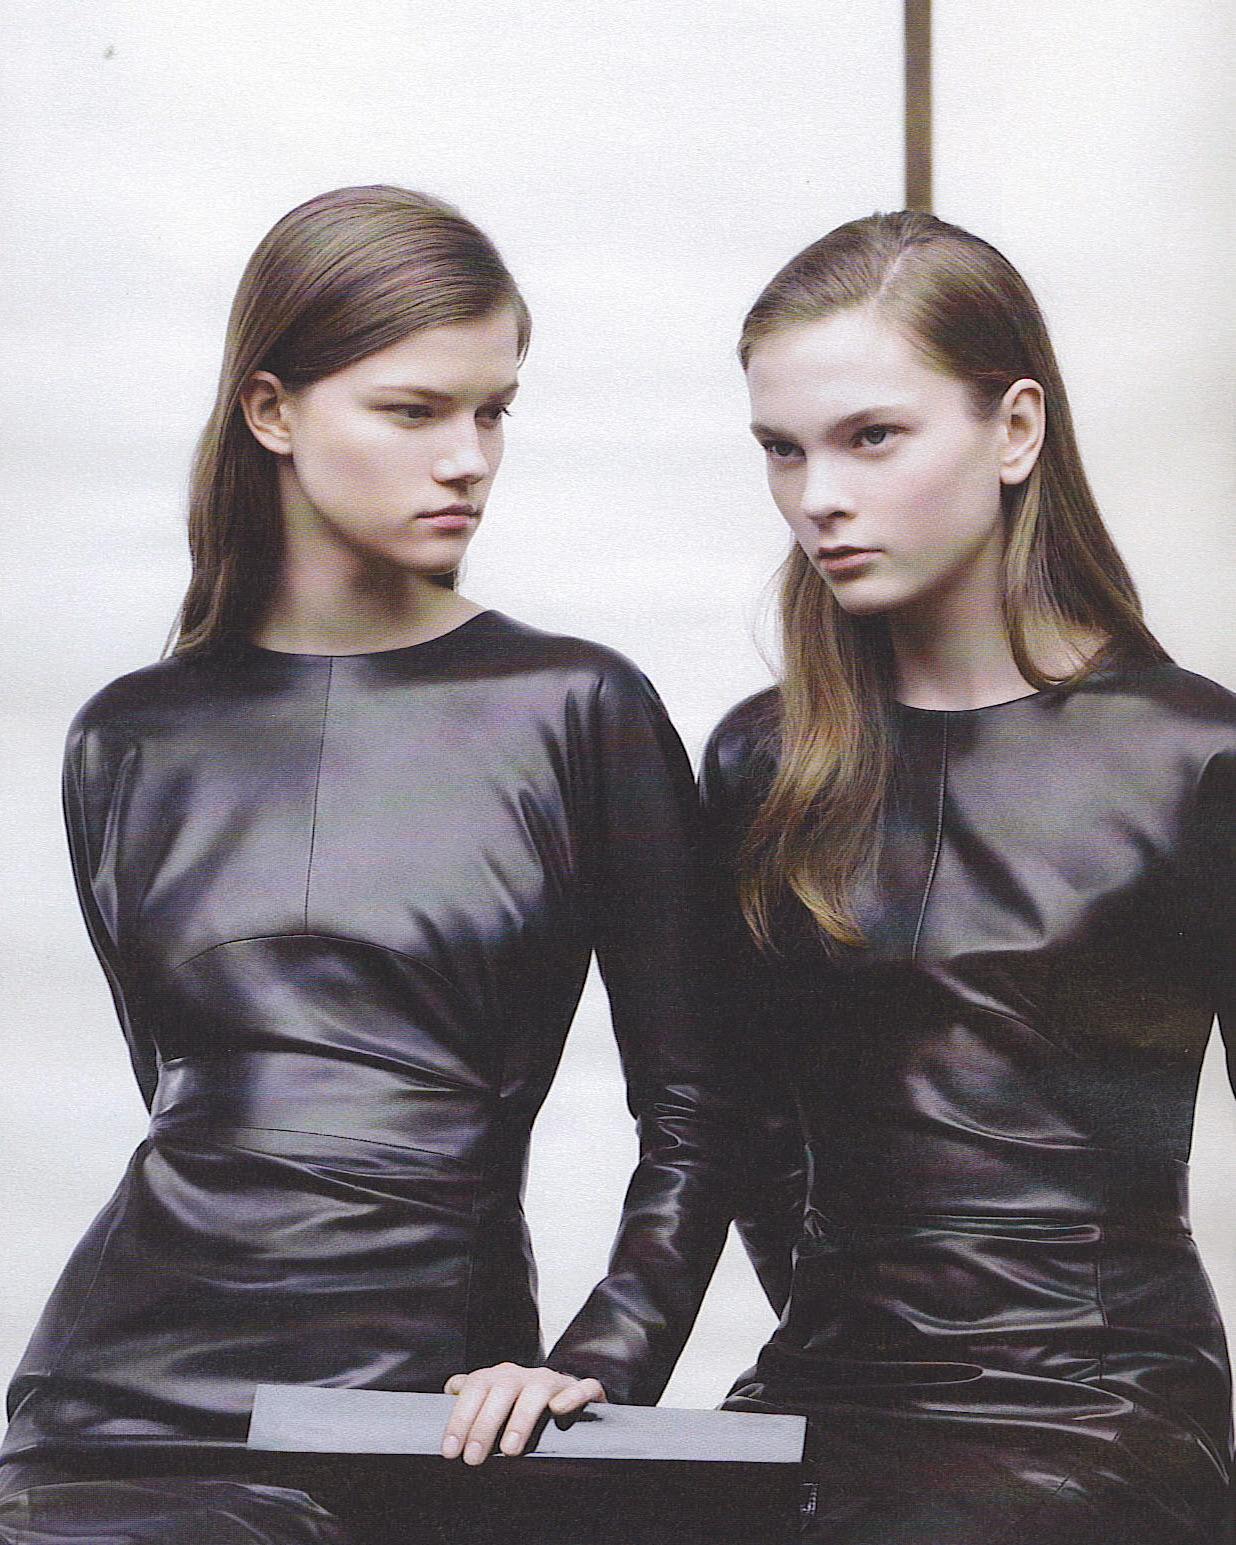 Kasia Struss and Irina Kulikova by Willy Vanderperre for Jil Sander F/W 2007 Campaign